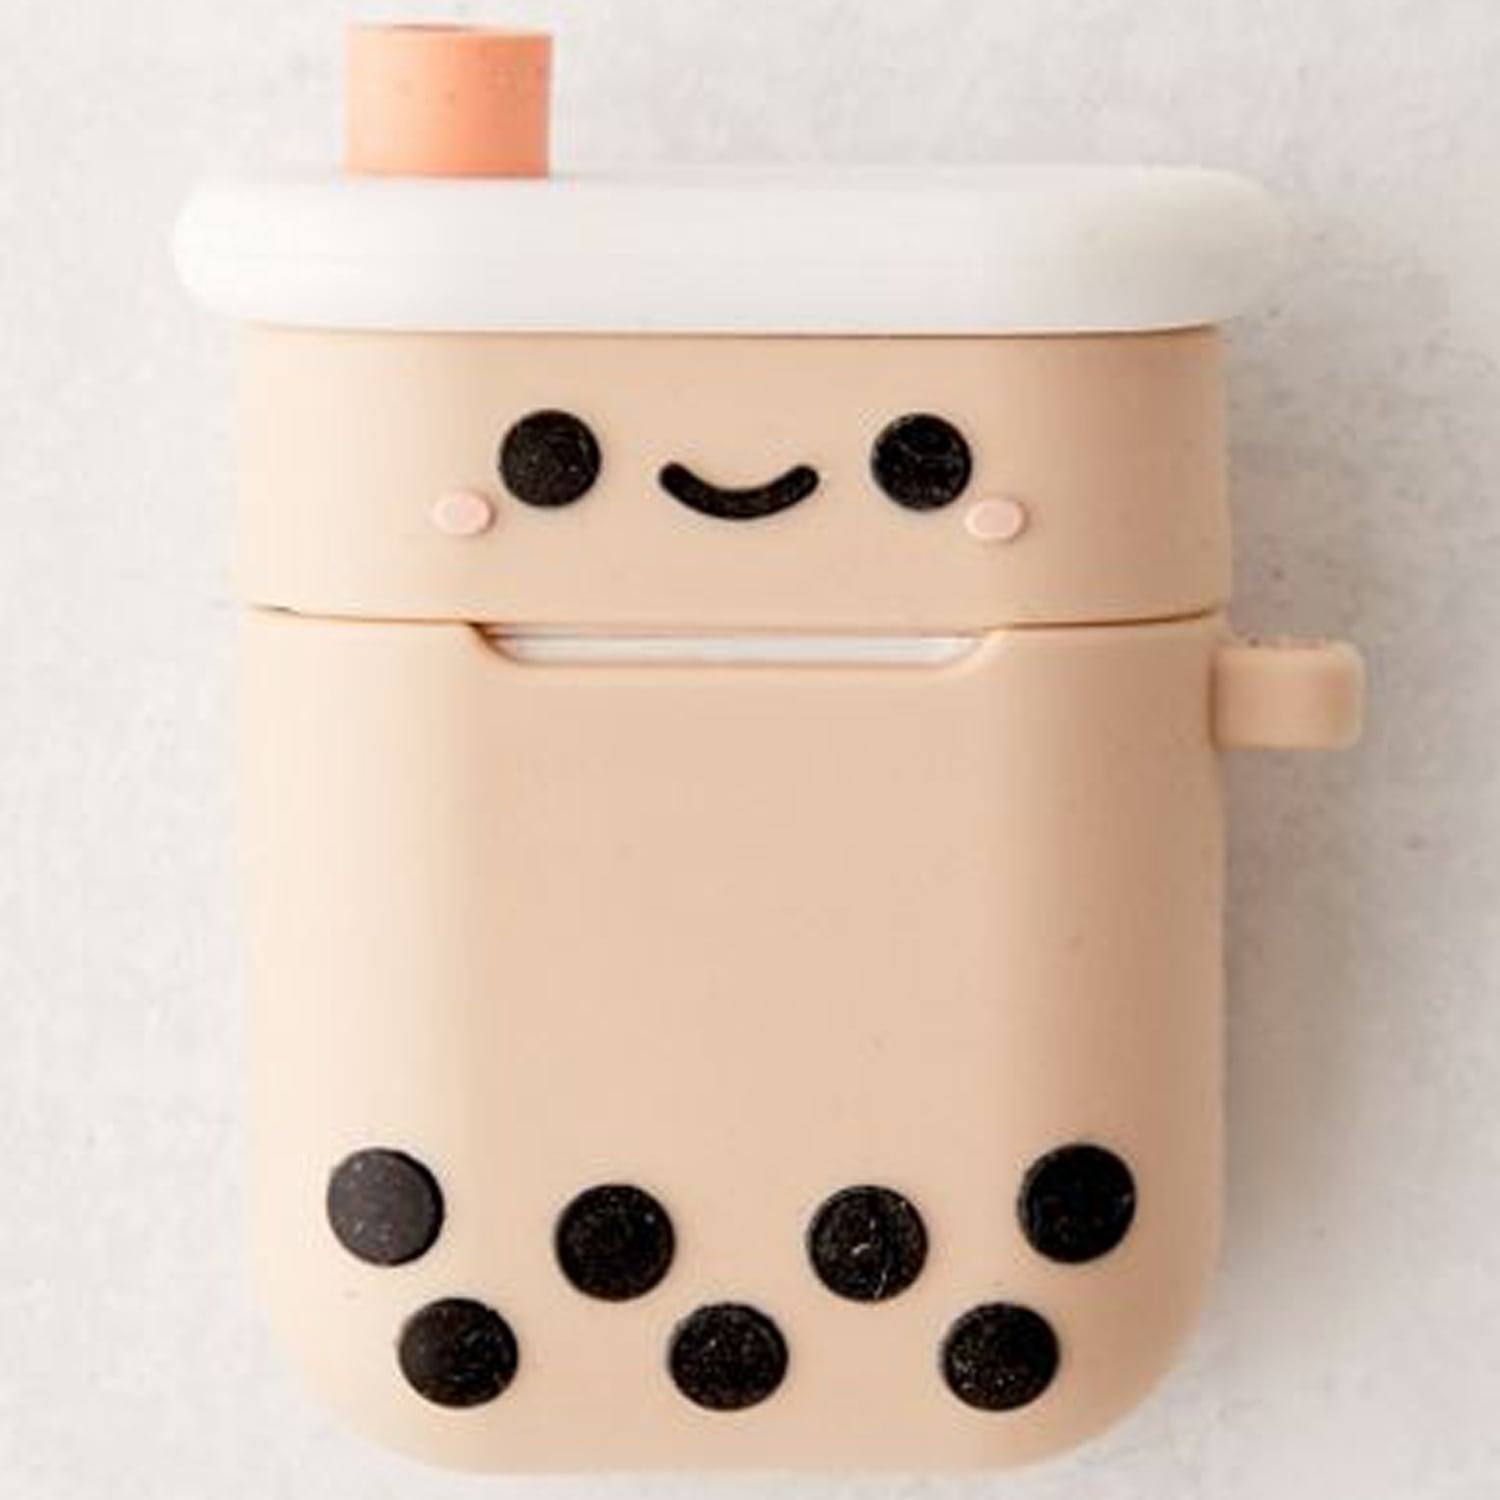 Urban Outfitters Airpod Cases Are Almost Cute Enough To Eat